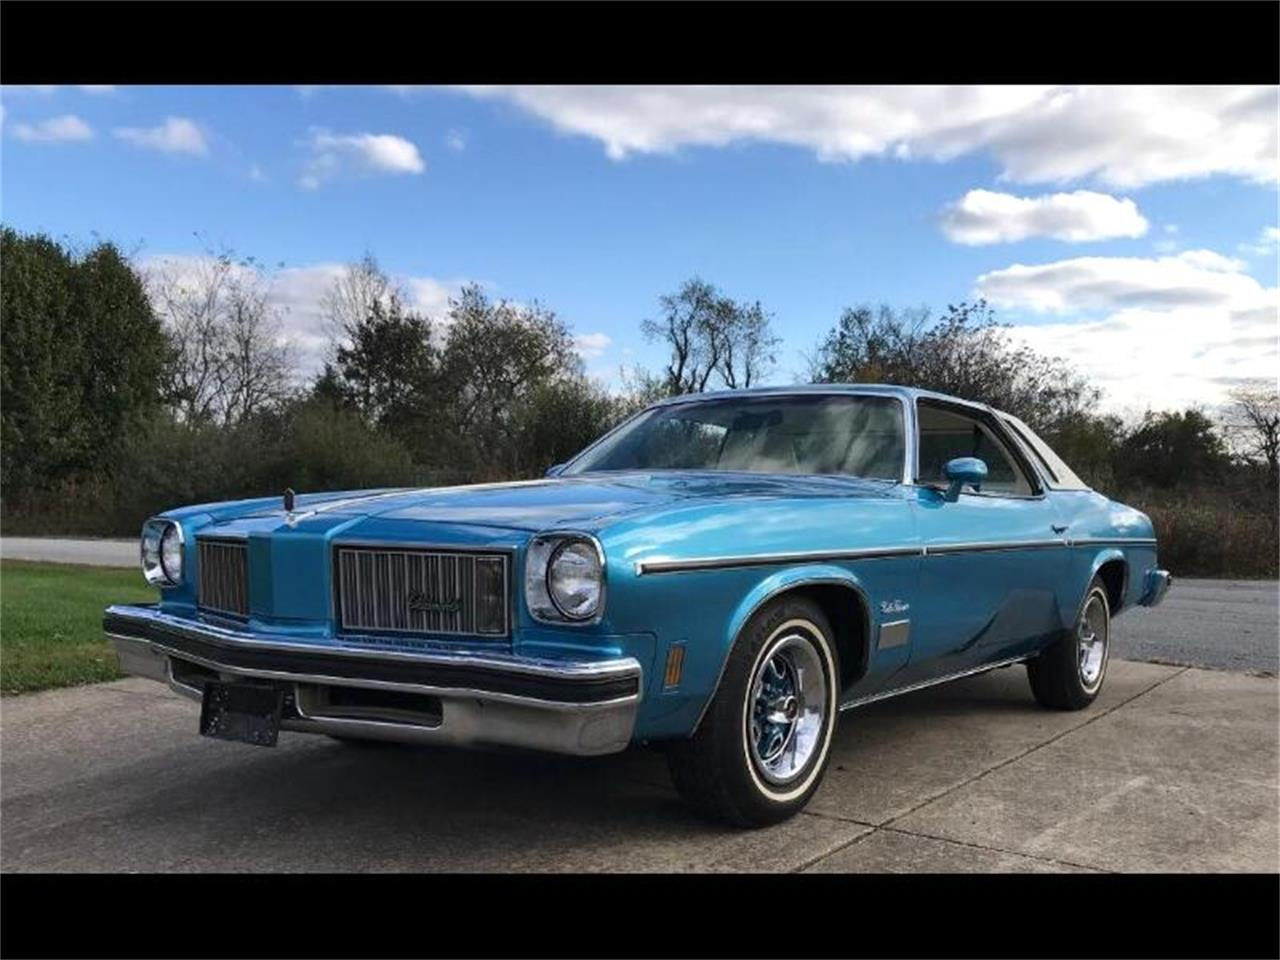 1975 Oldsmobile Cutlass Supreme (CC-1437836) for sale in Harpers Ferry, West Virginia